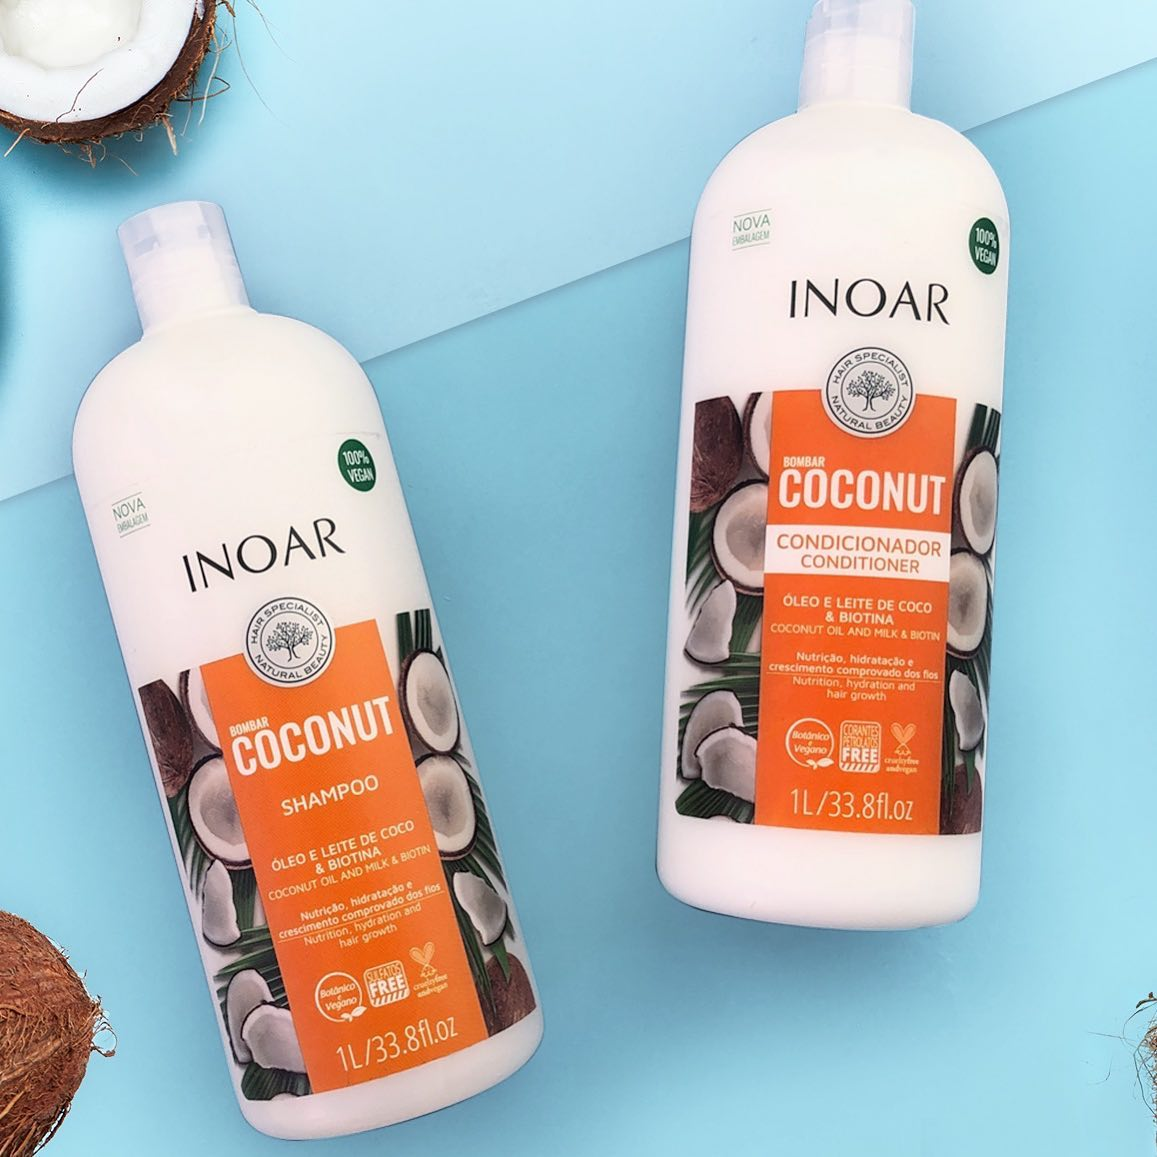 Inoar Coconut Shampoo & Conditioner We Love!